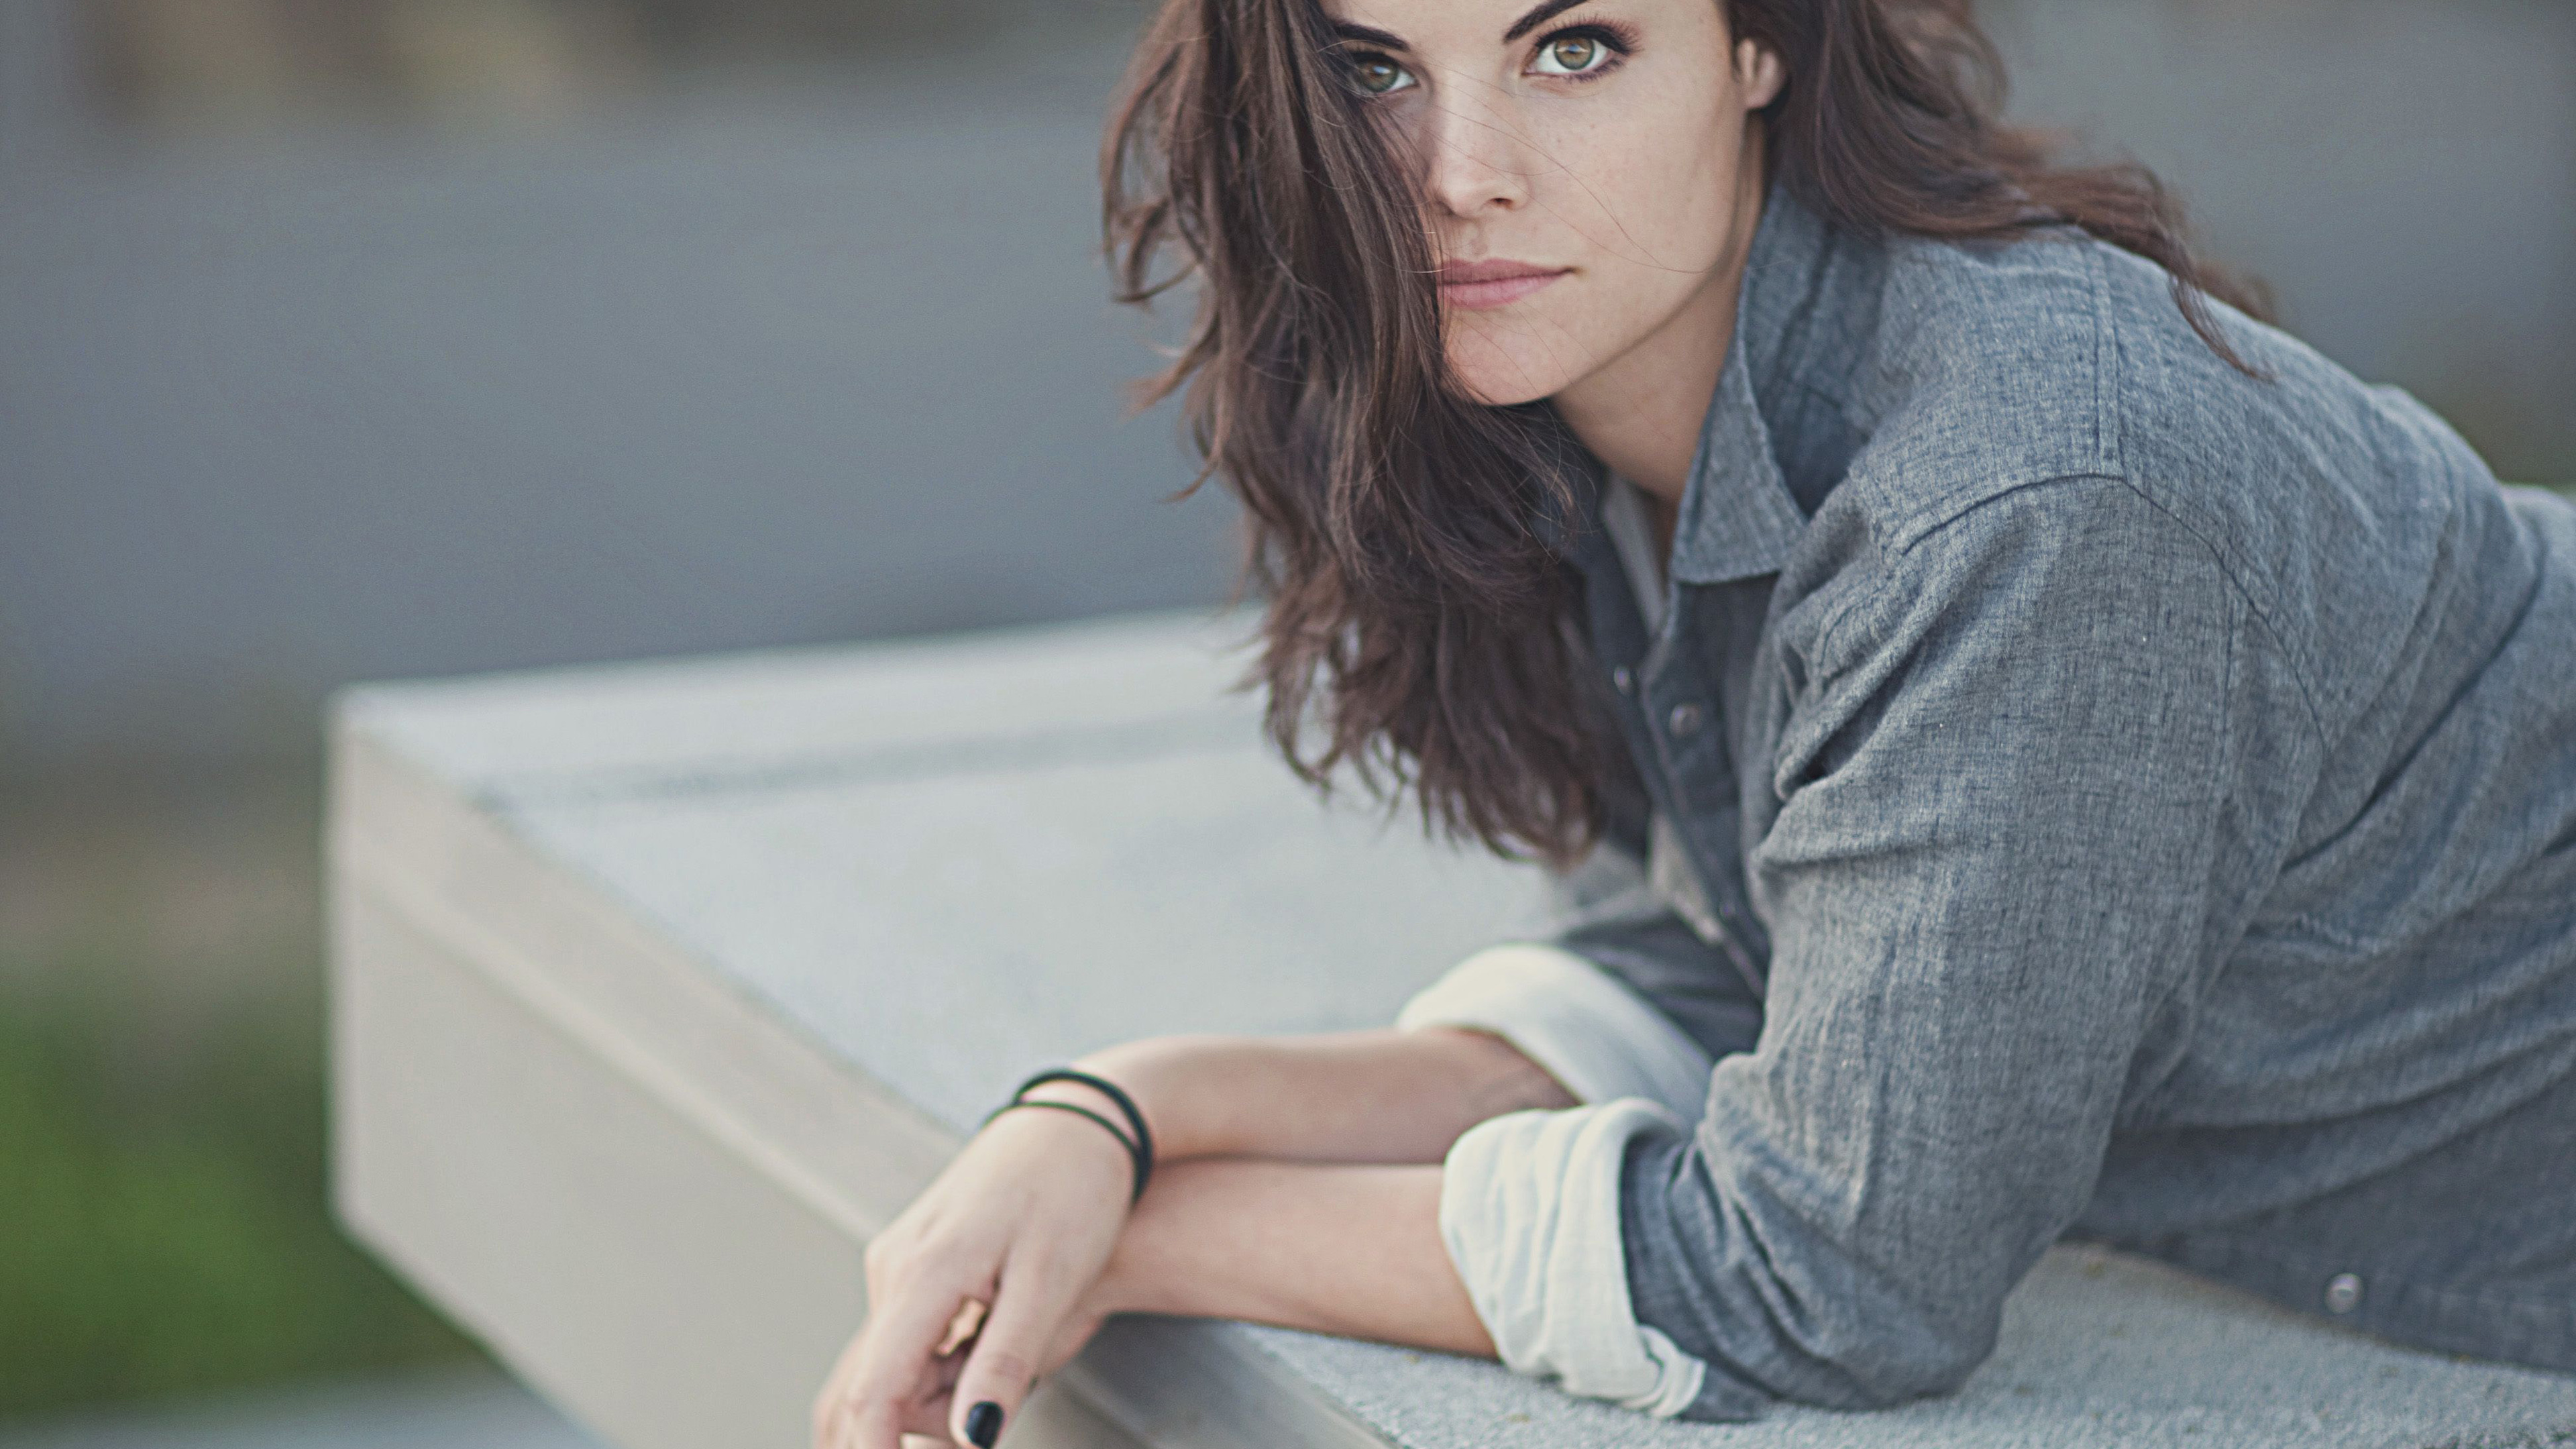 jaimie alexander 1536858885 - Jaimie Alexander - jaimie alexander wallpapers, hd-wallpapers, girls wallpapers, celebrities wallpapers, 4k-wallpapers